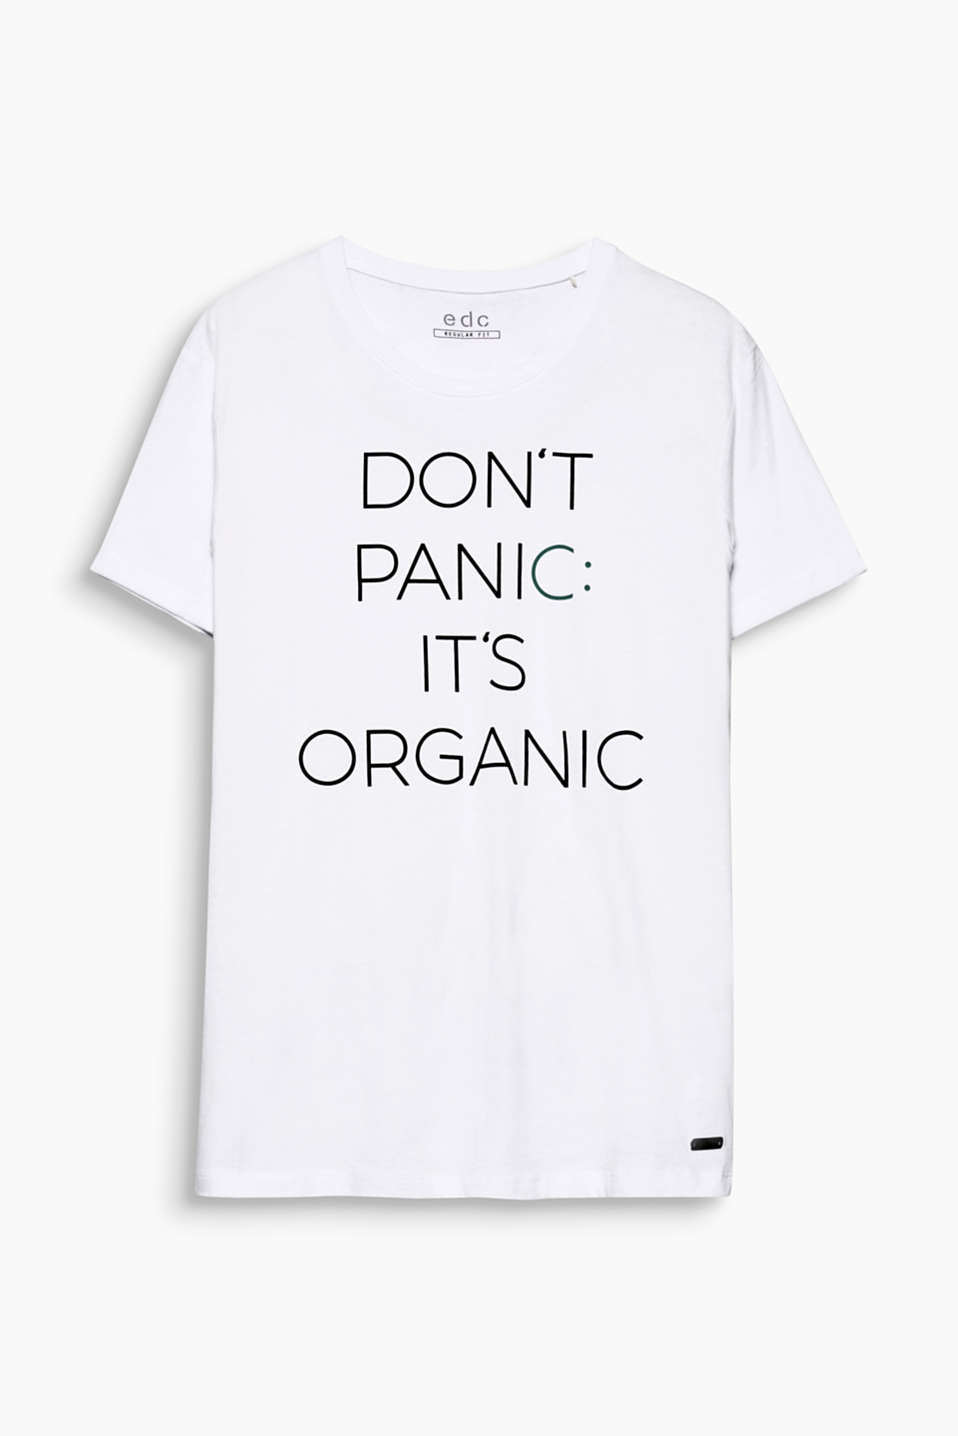 Don´t panic it´s organic! One statement, one print: T-shirt made of premium, environmentally friendly organic cotton